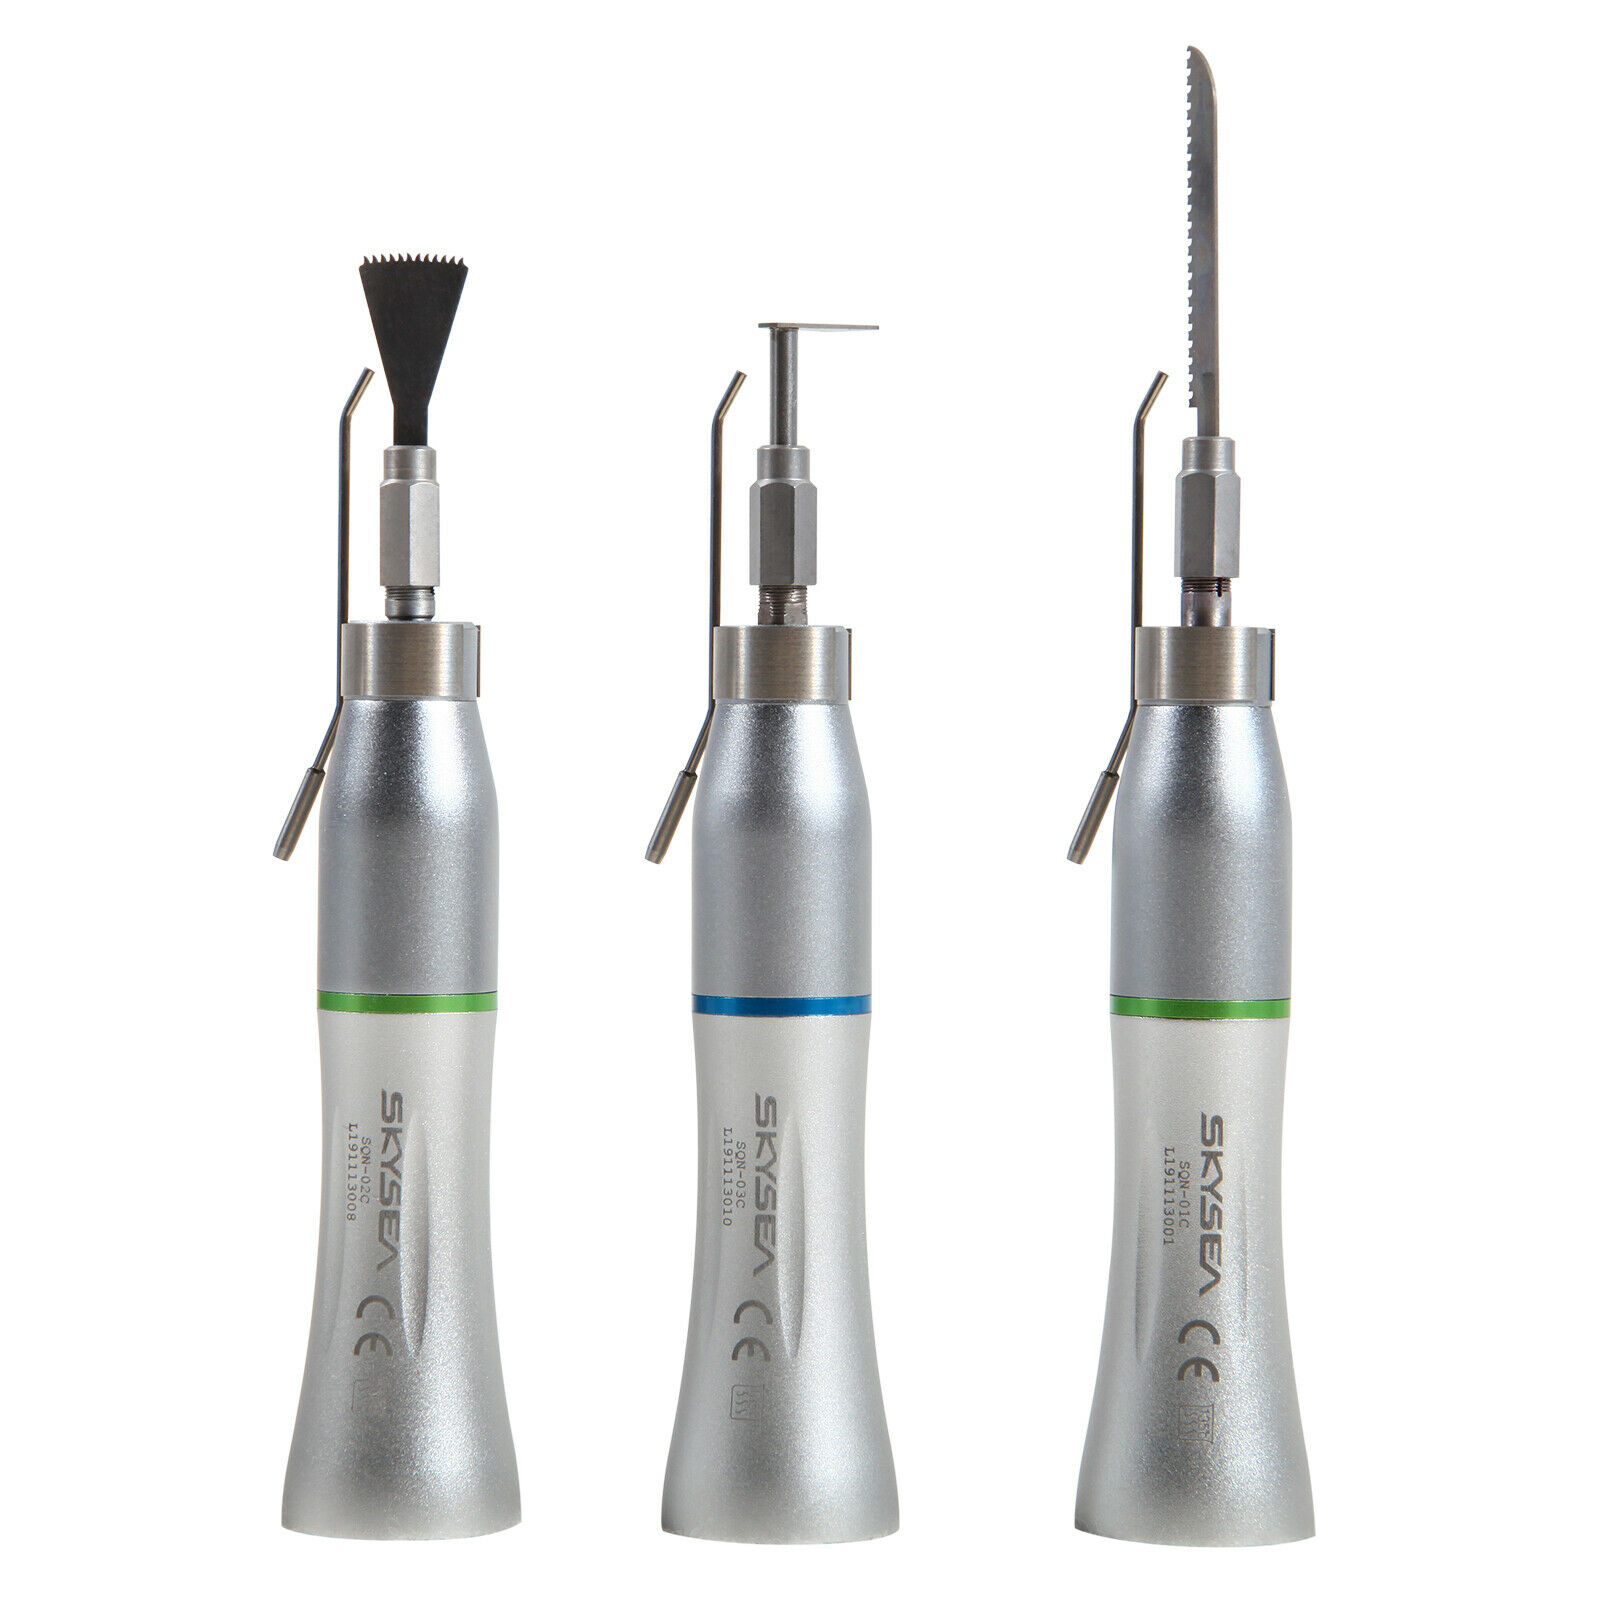 Dental Micro 1:1/4:1 Surgical 3°/17° Saw Surgical Straight Low Speed  Handpiece Oscillating Reciprocating